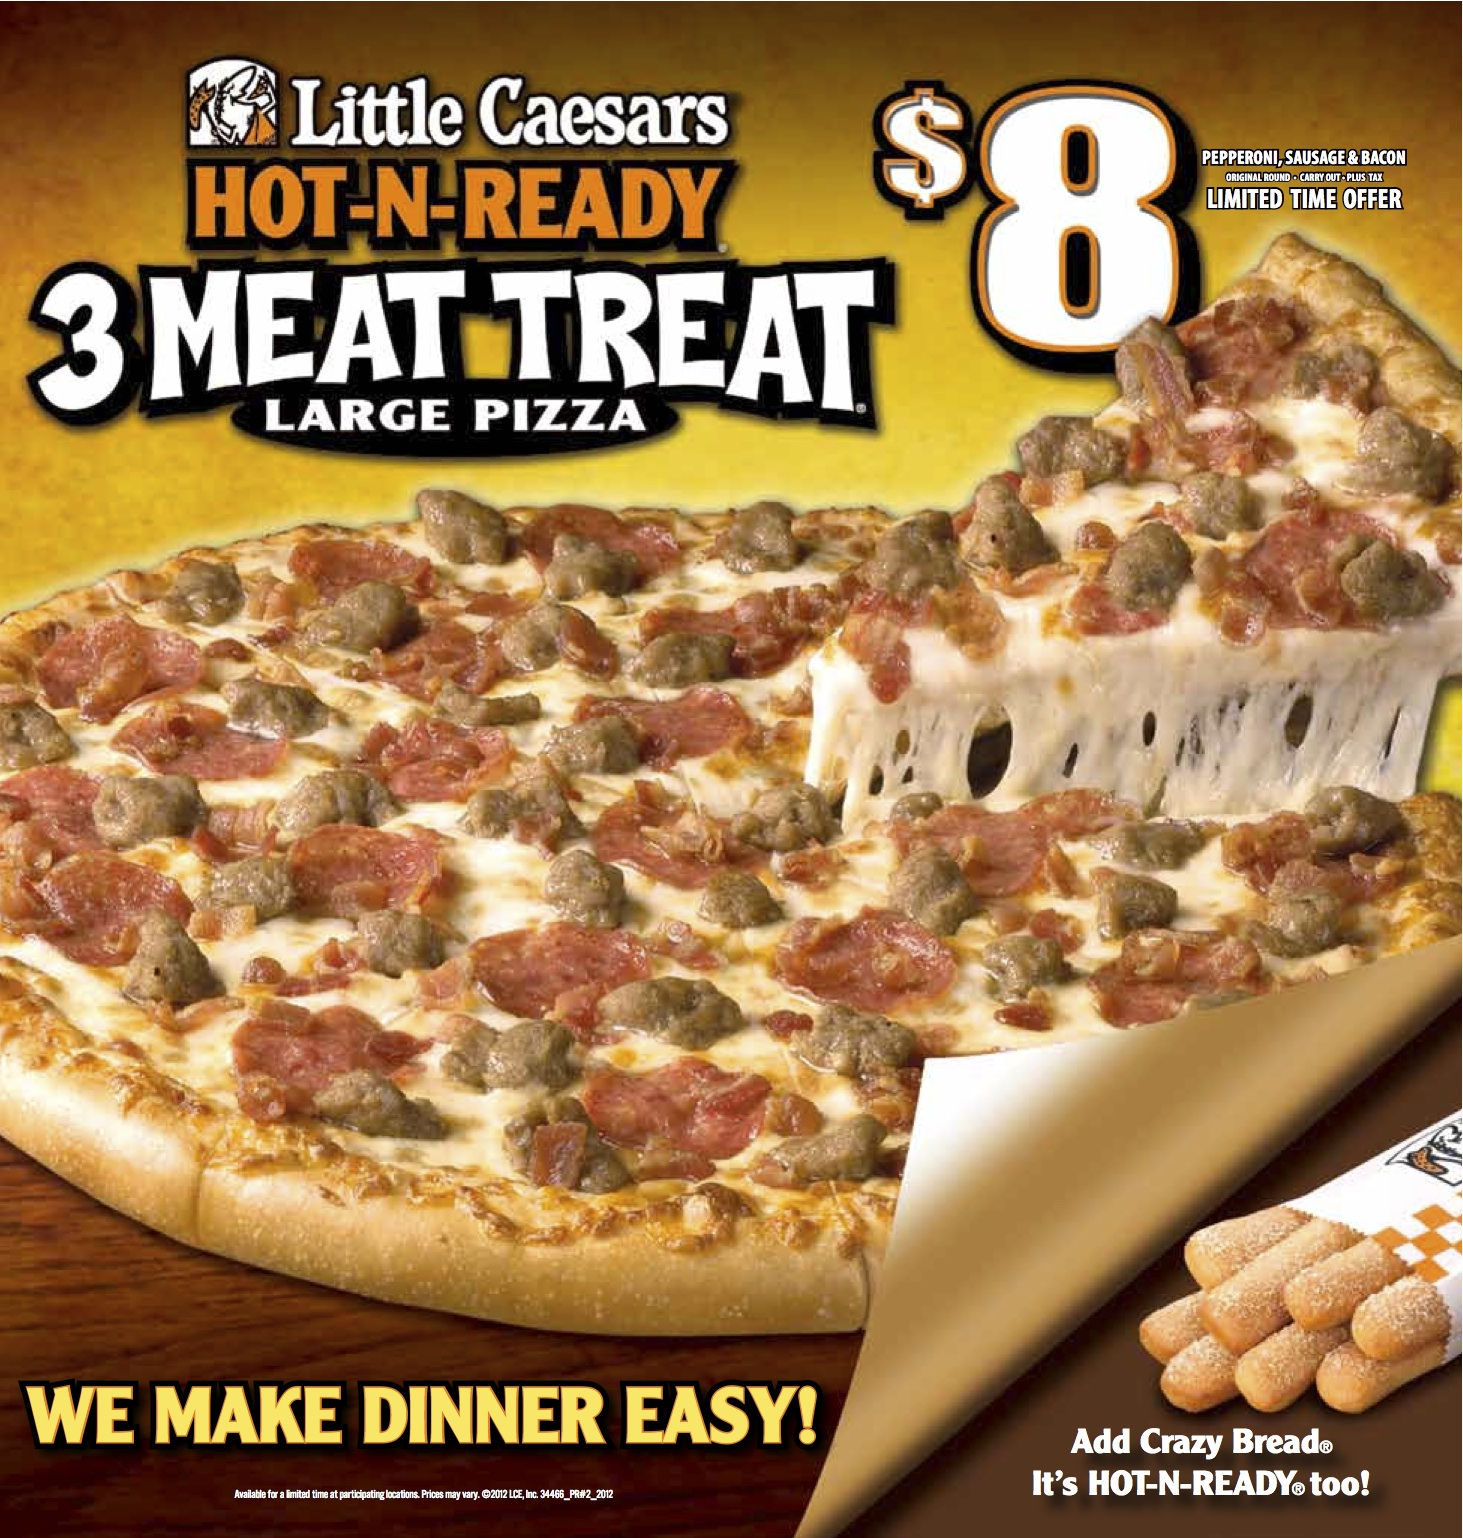 LITTLE CAESAR'S. Michael and Marian Ilitch, the founders of Little Caesars Pizza, dreamed big, took risks, and grew one pizza shop in a Detroit suburb into an international pizza chain.